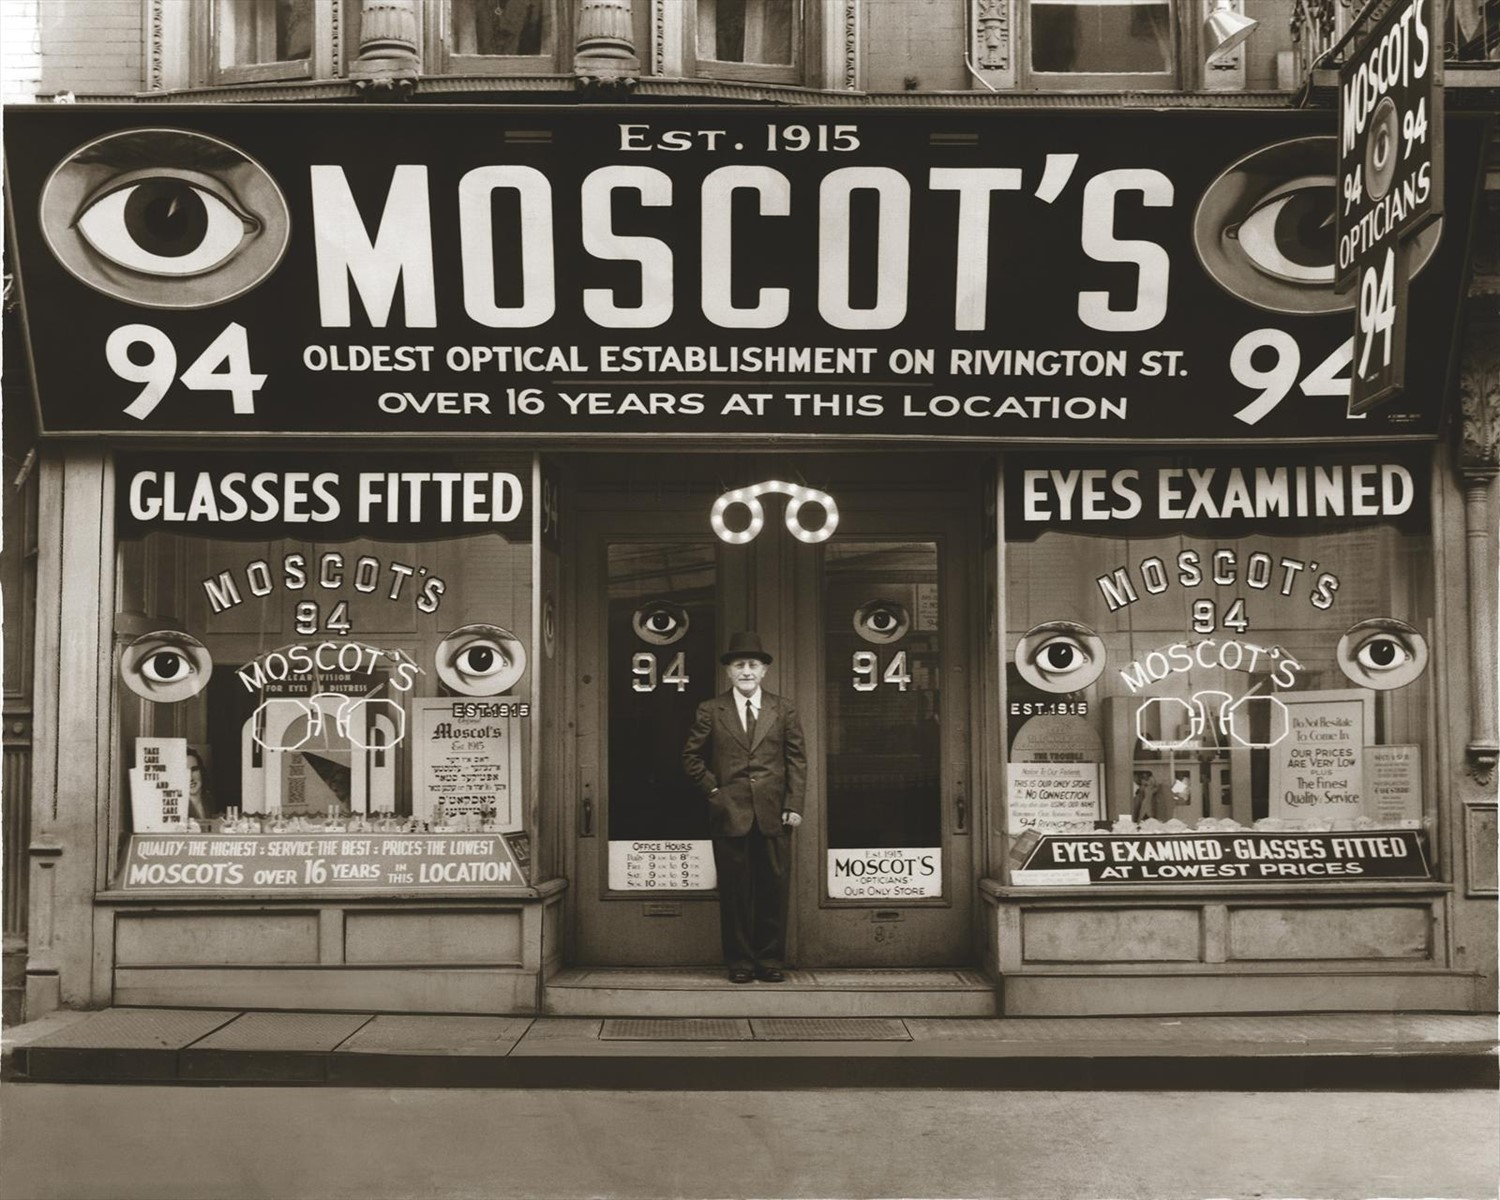 Hyman Moscot on Rivington Street, 1934